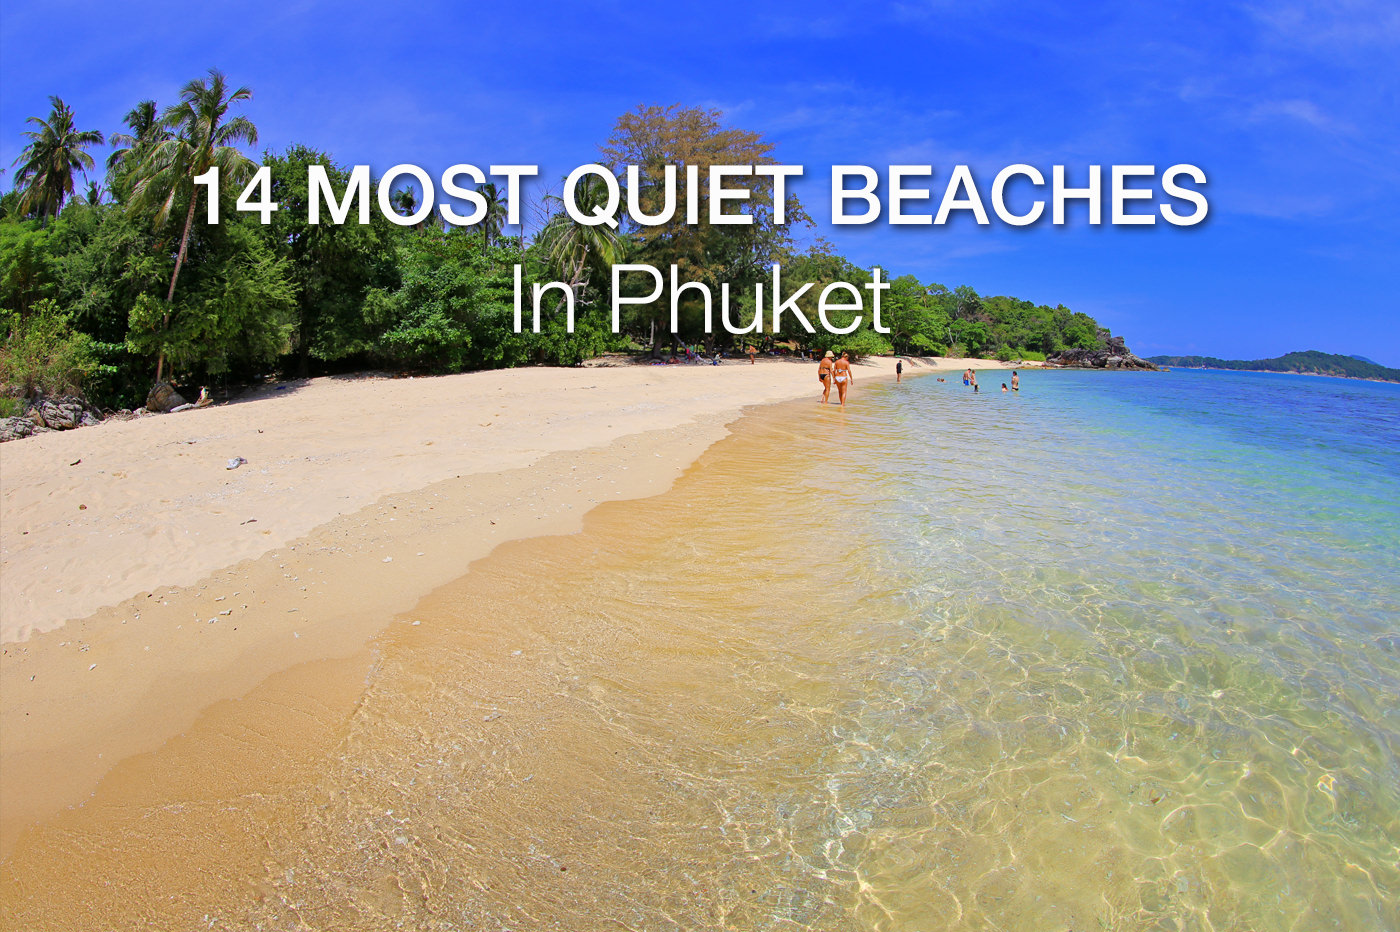 14 Most Quiet Beaches of Phuket (and a few secret ones)